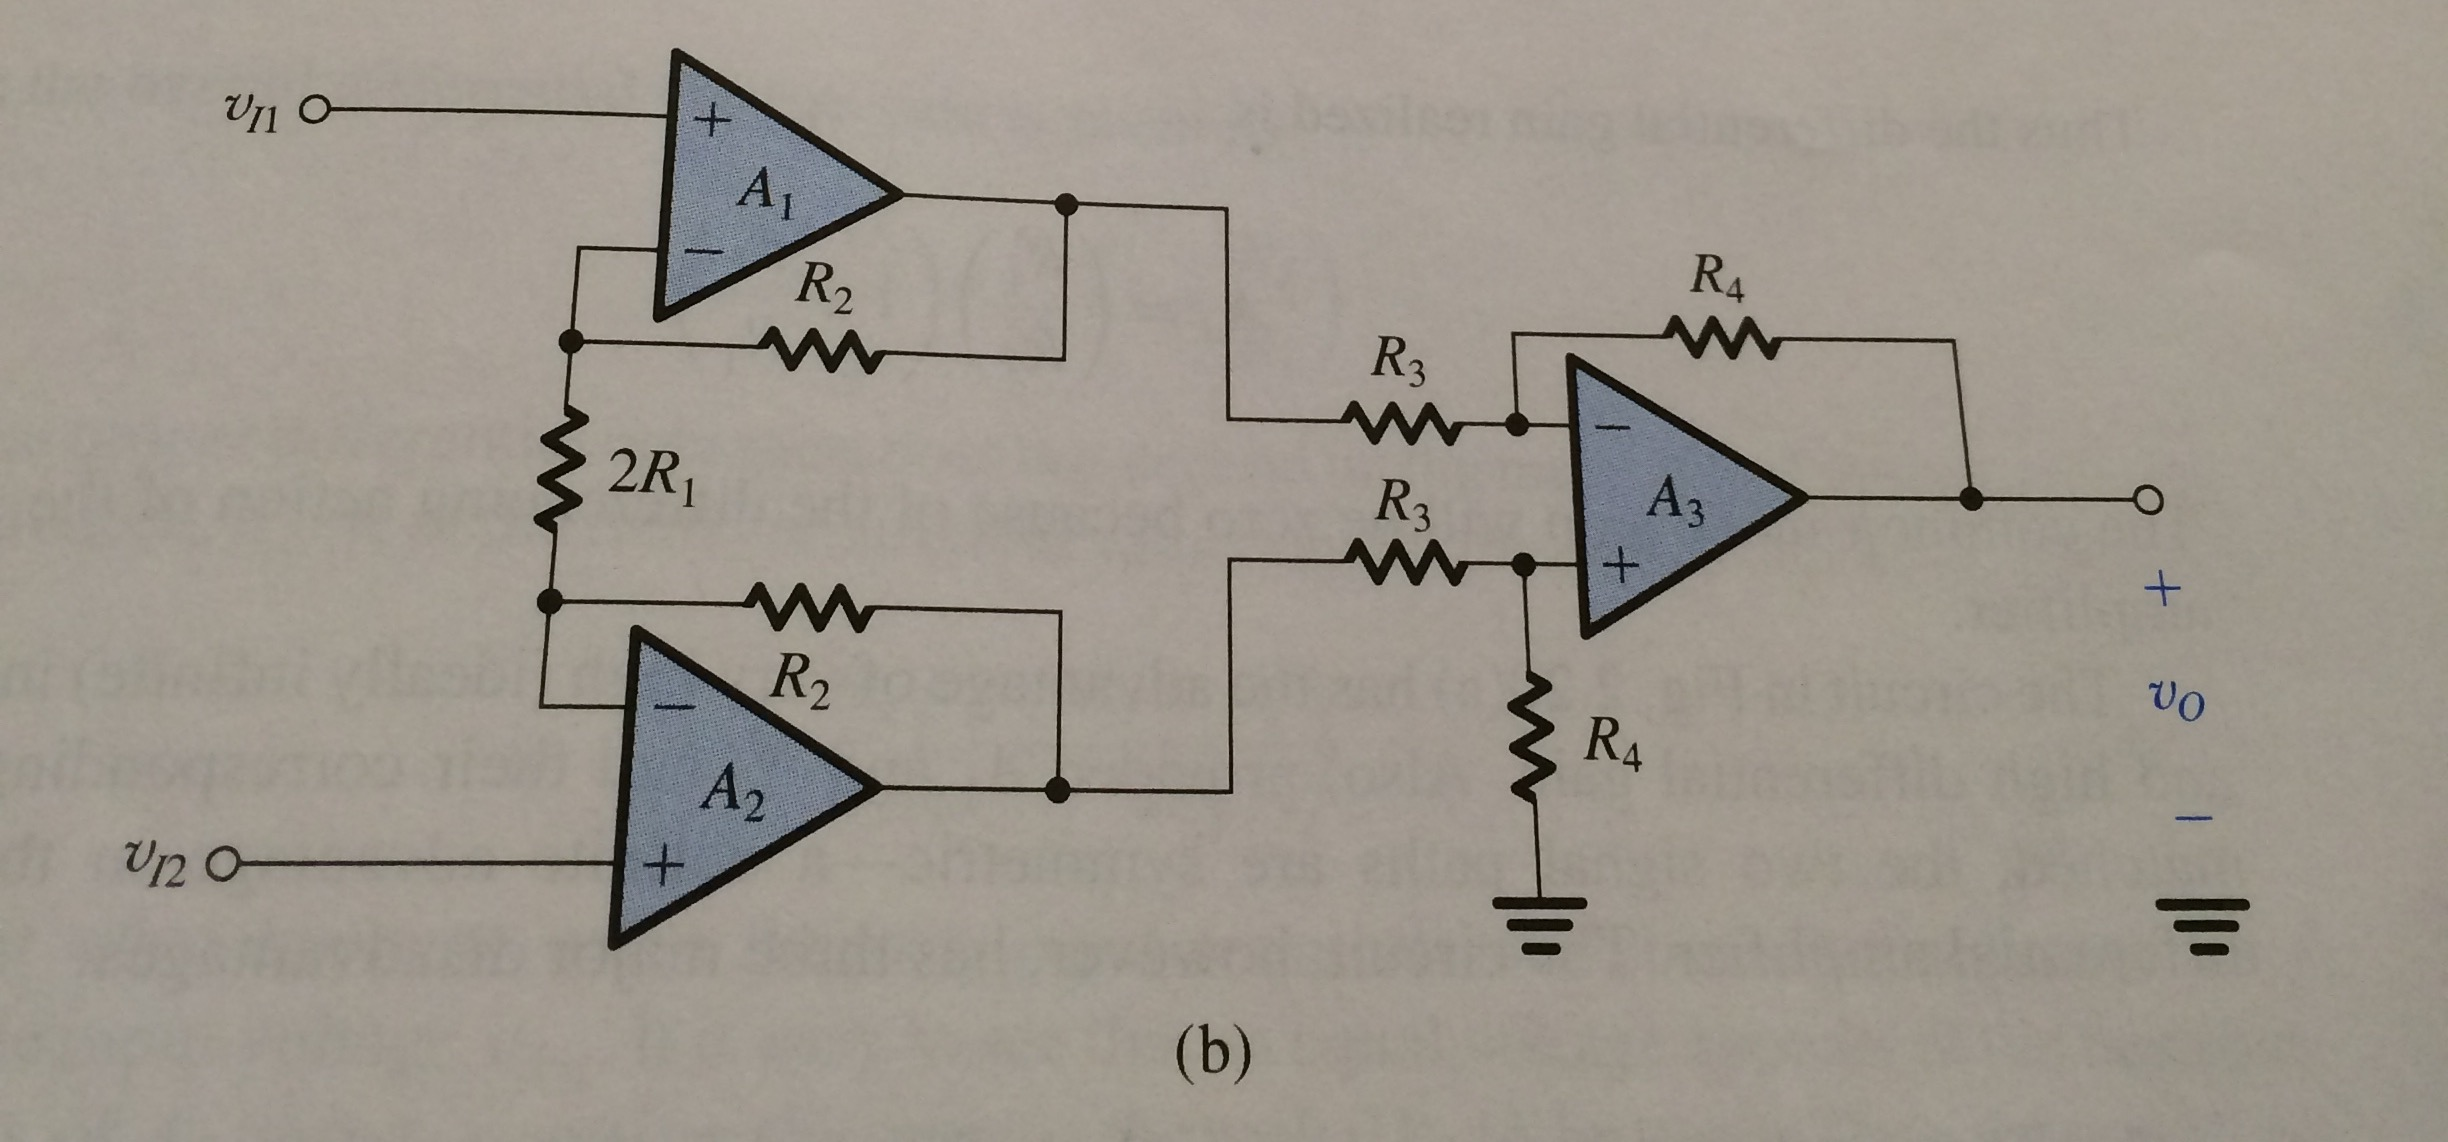 Solved Design The Instrumentation Amplifier Circuit Of Fi Diagram 3 2